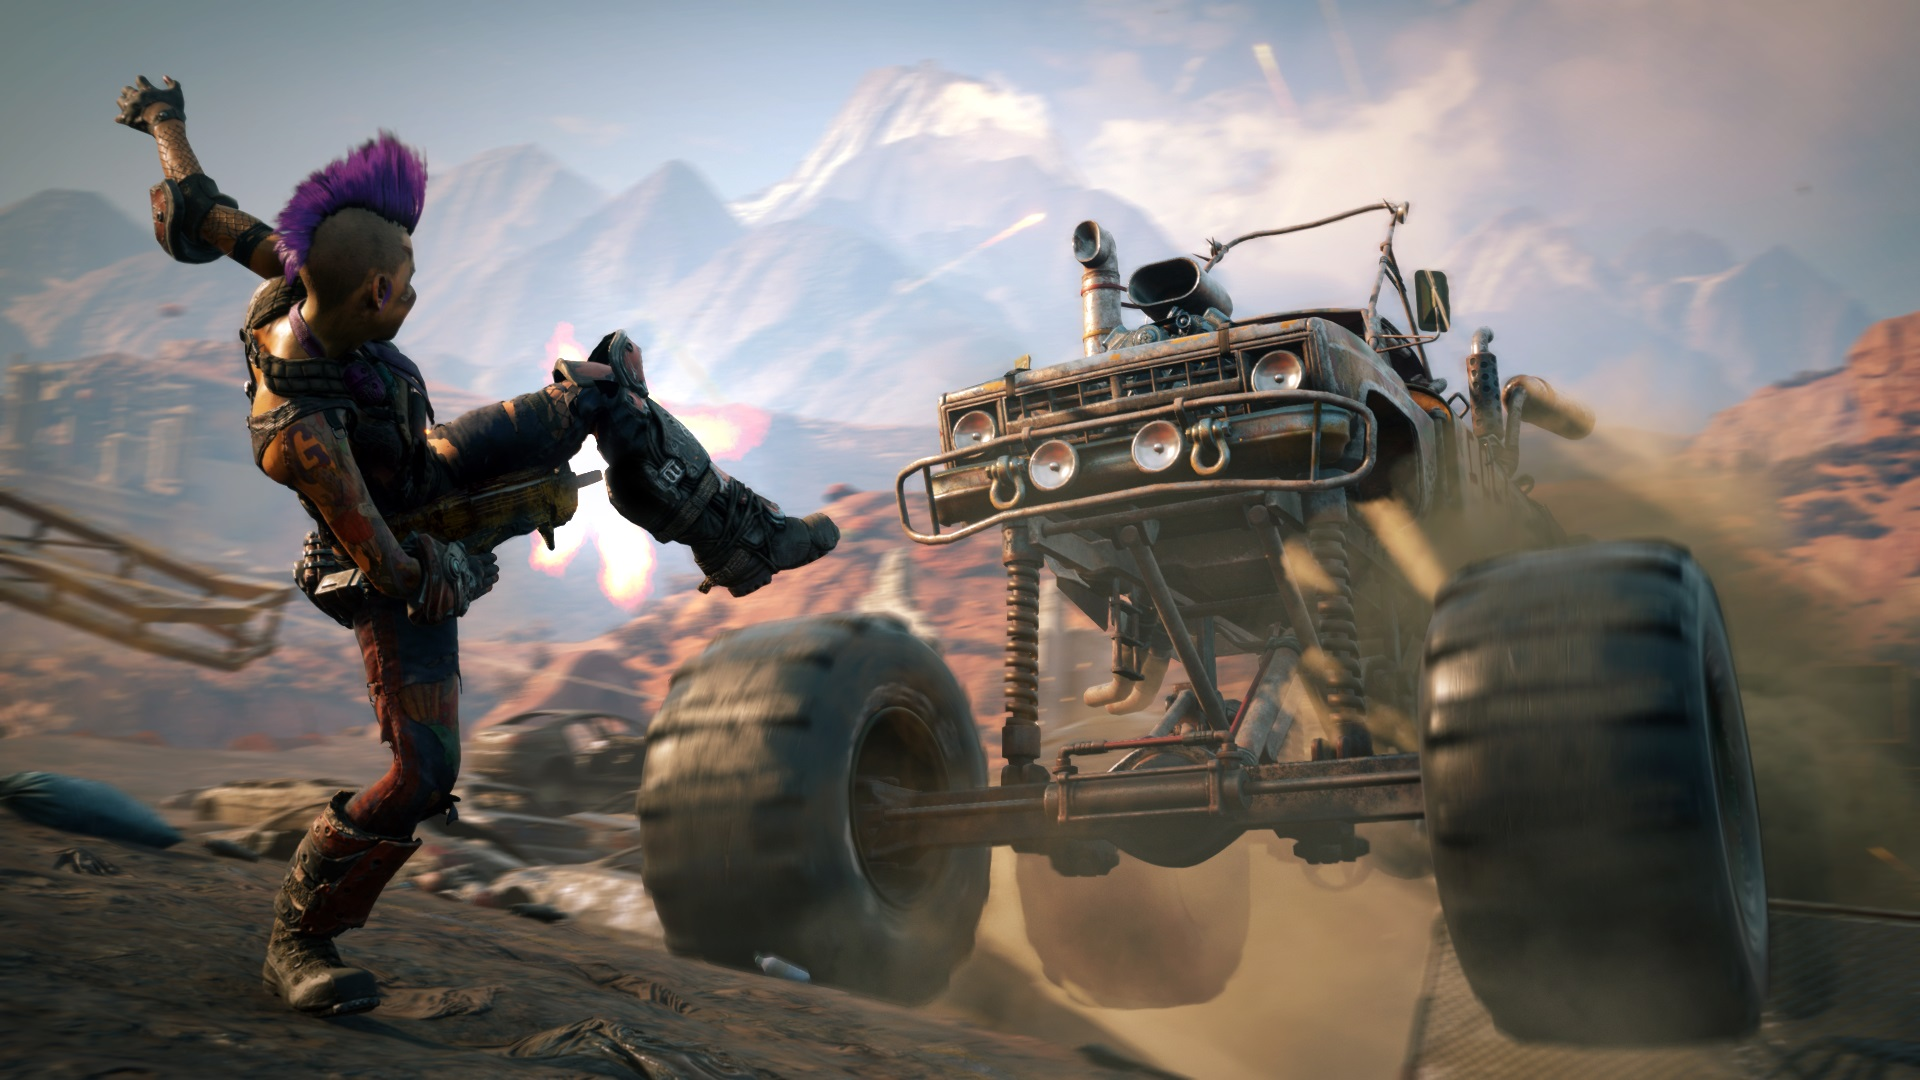 RAGE 2 - Xbox One X/PS4 Pro 1080p/60fps - Xbox One/PS4 30fps